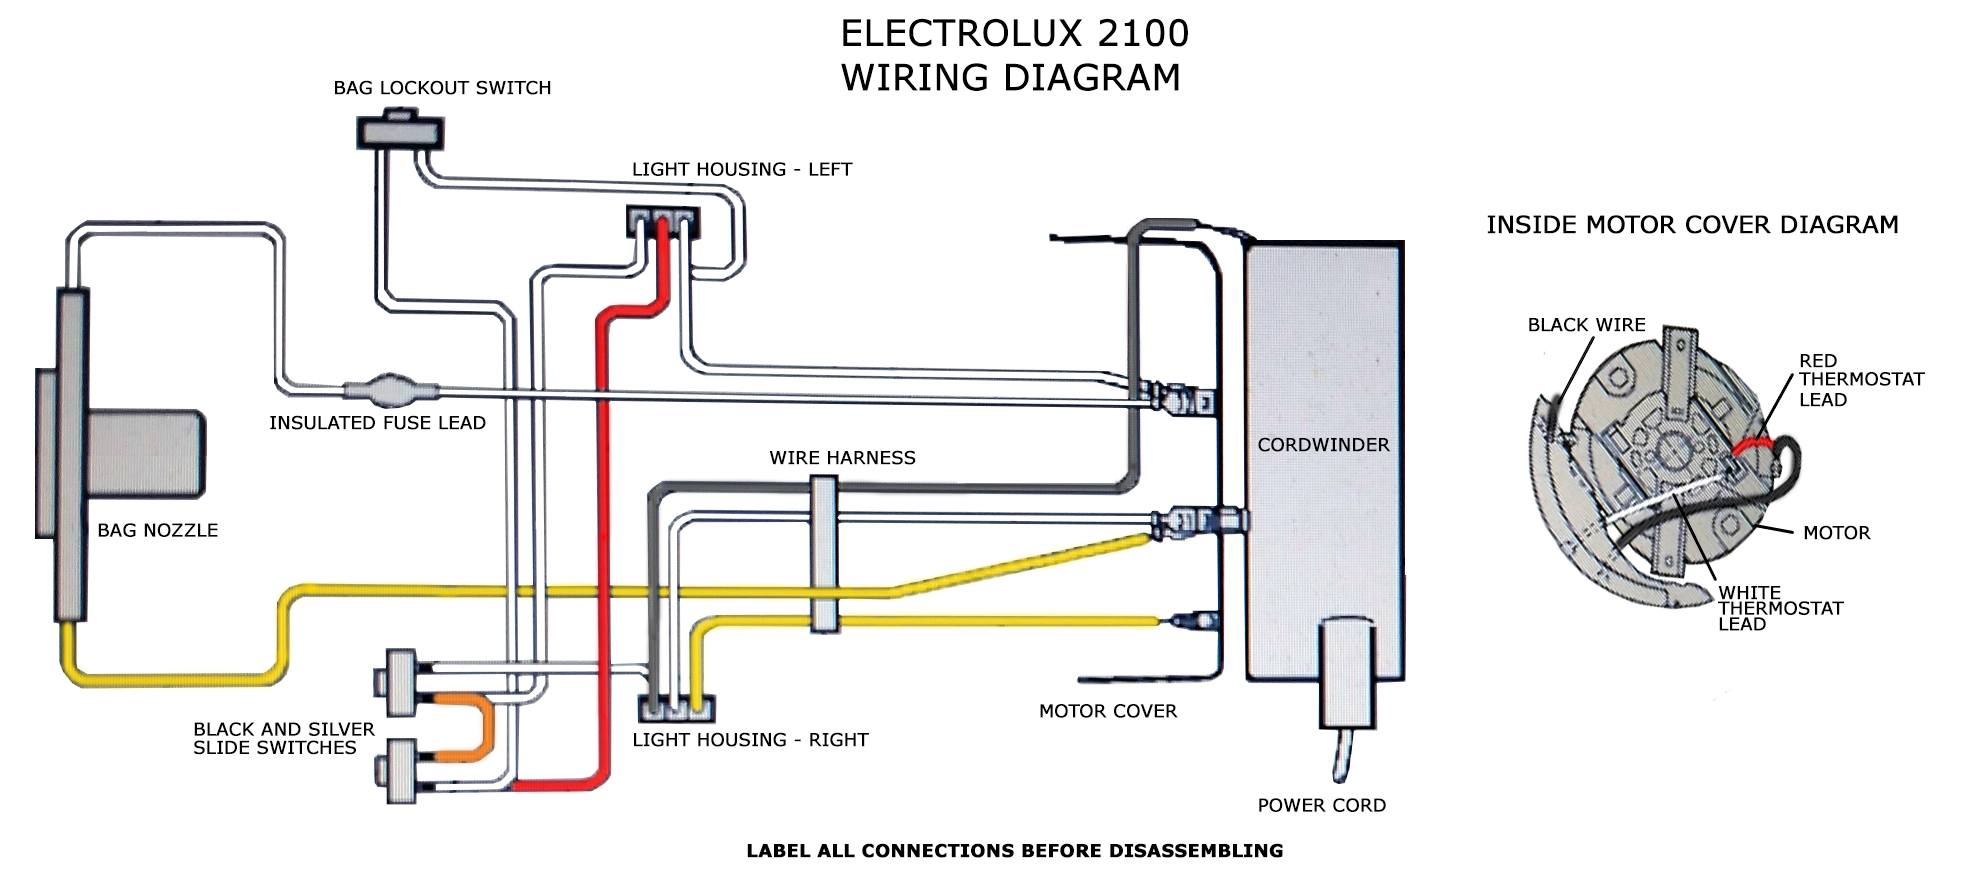 Electrolux Canister Vacuum Wiring Diagram | Manual e-books